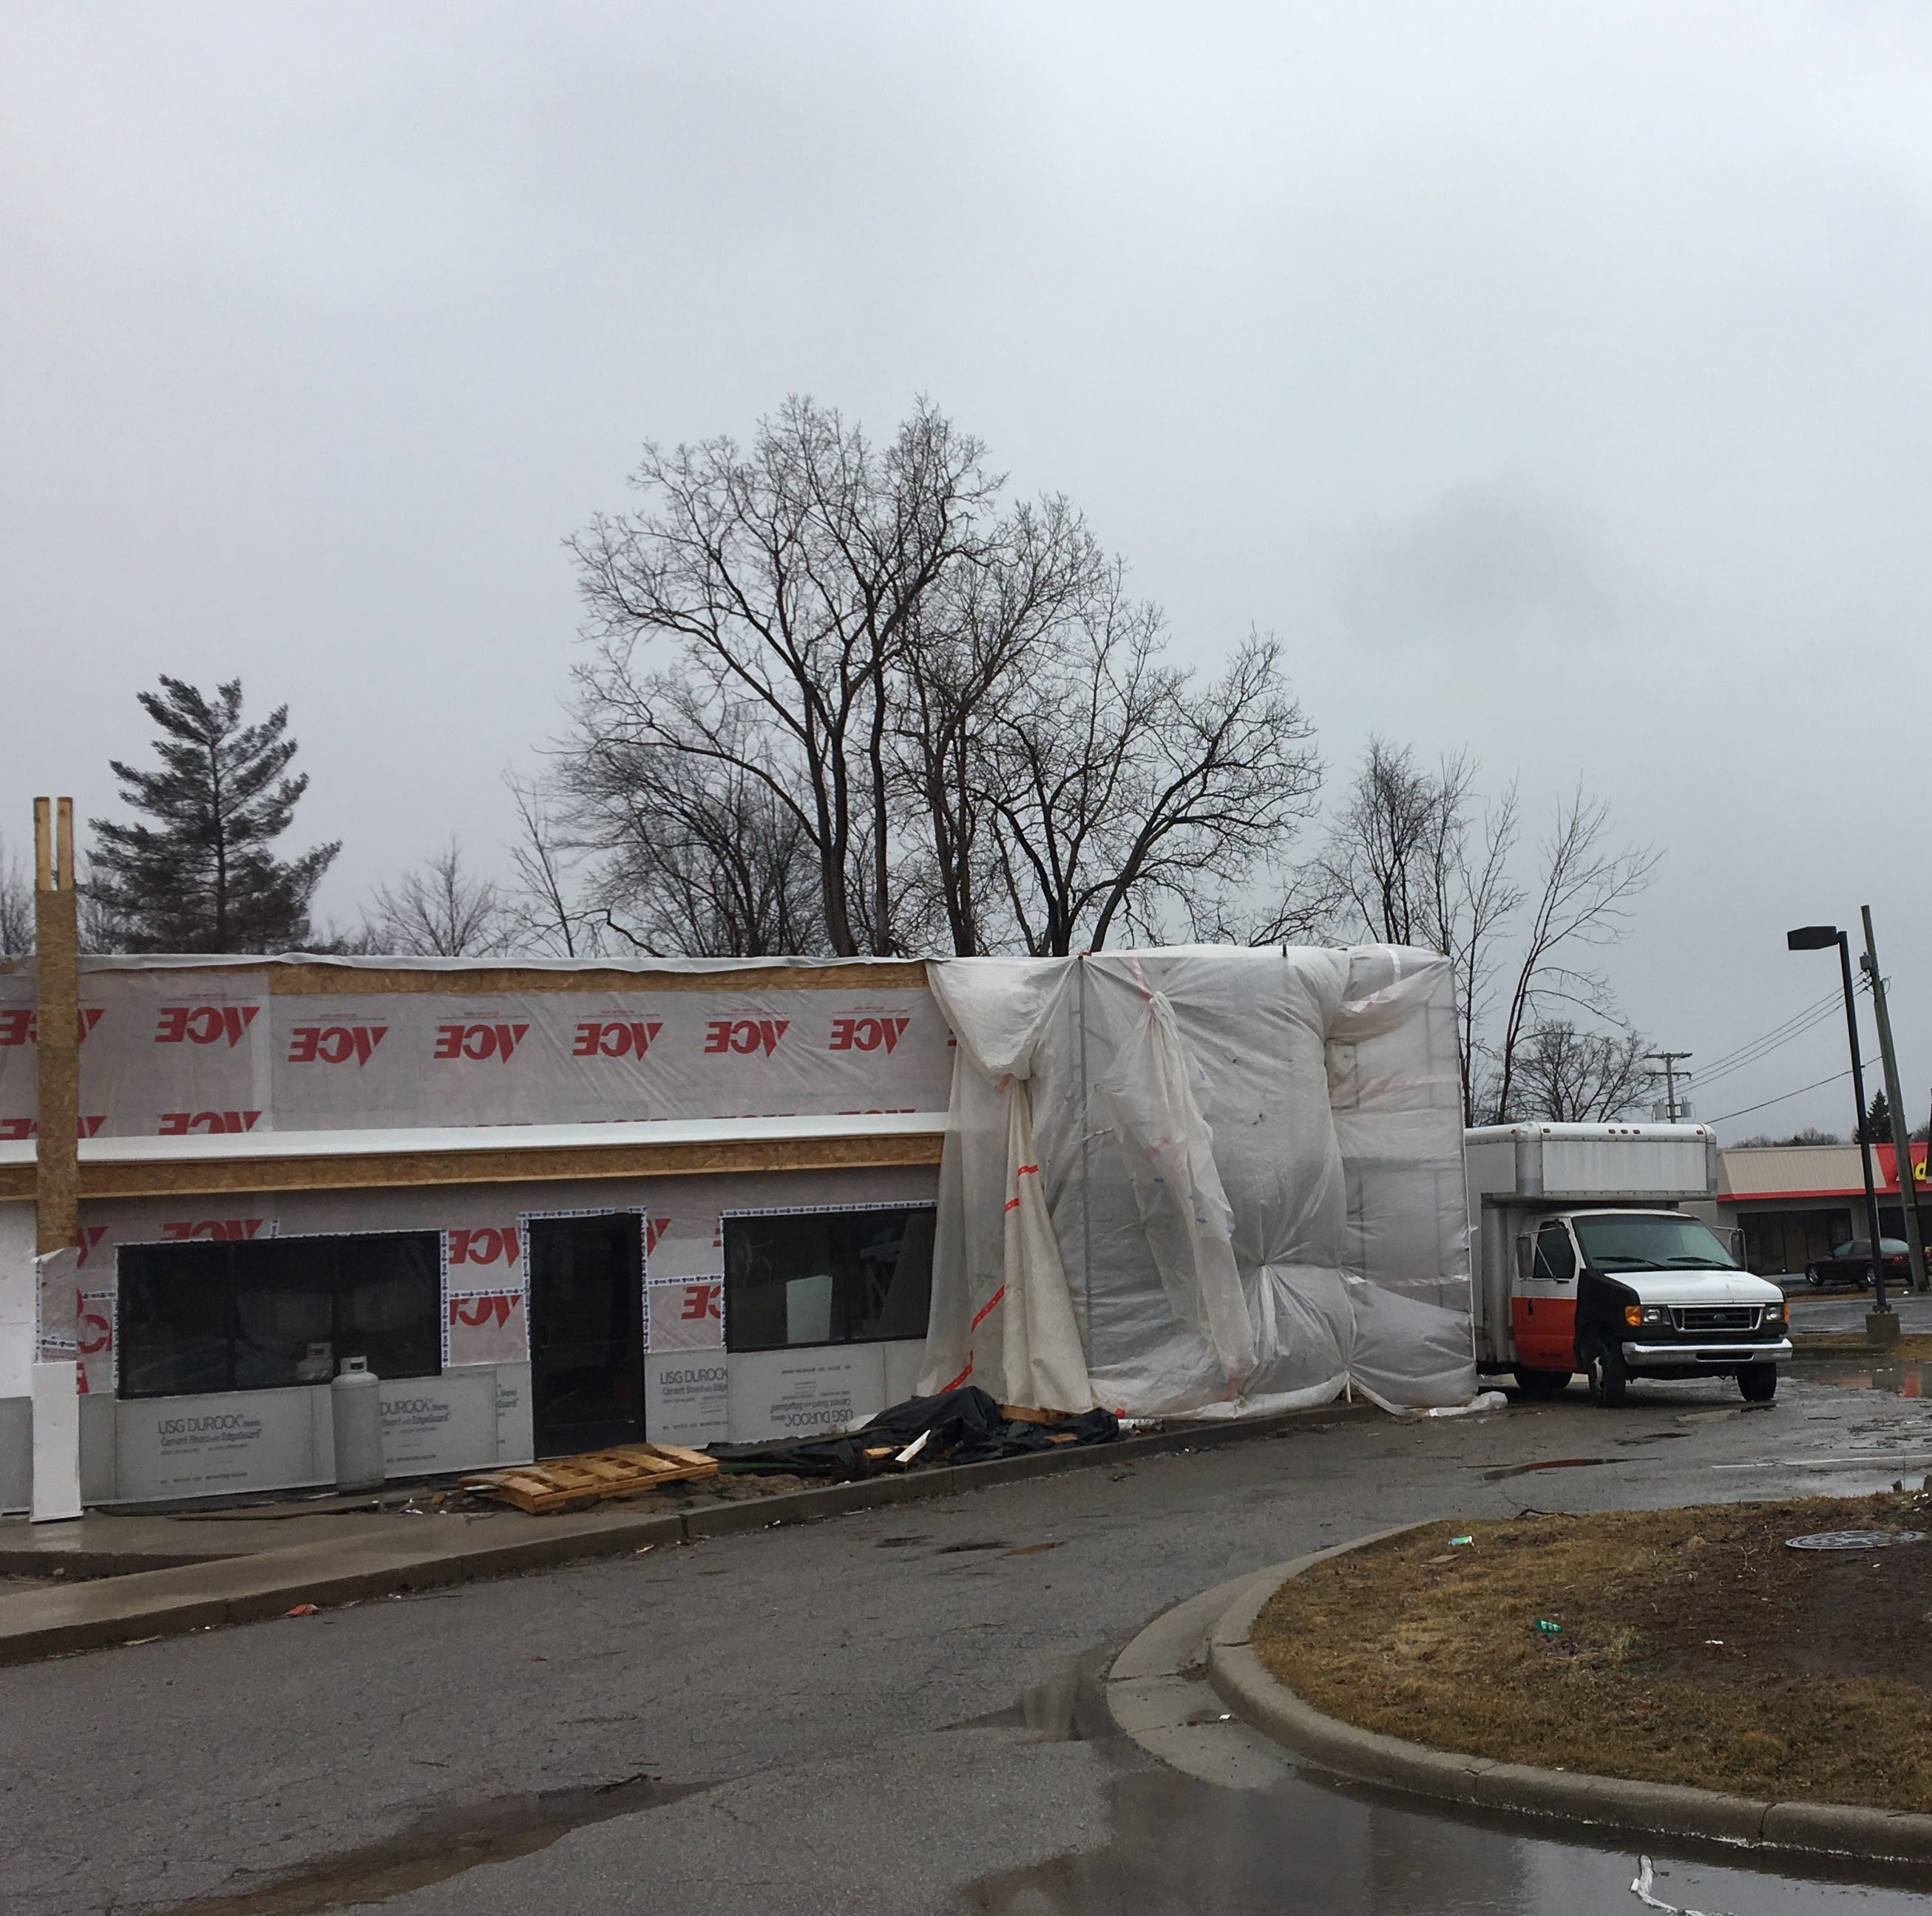 Marysville A&W family restaurant opening in June